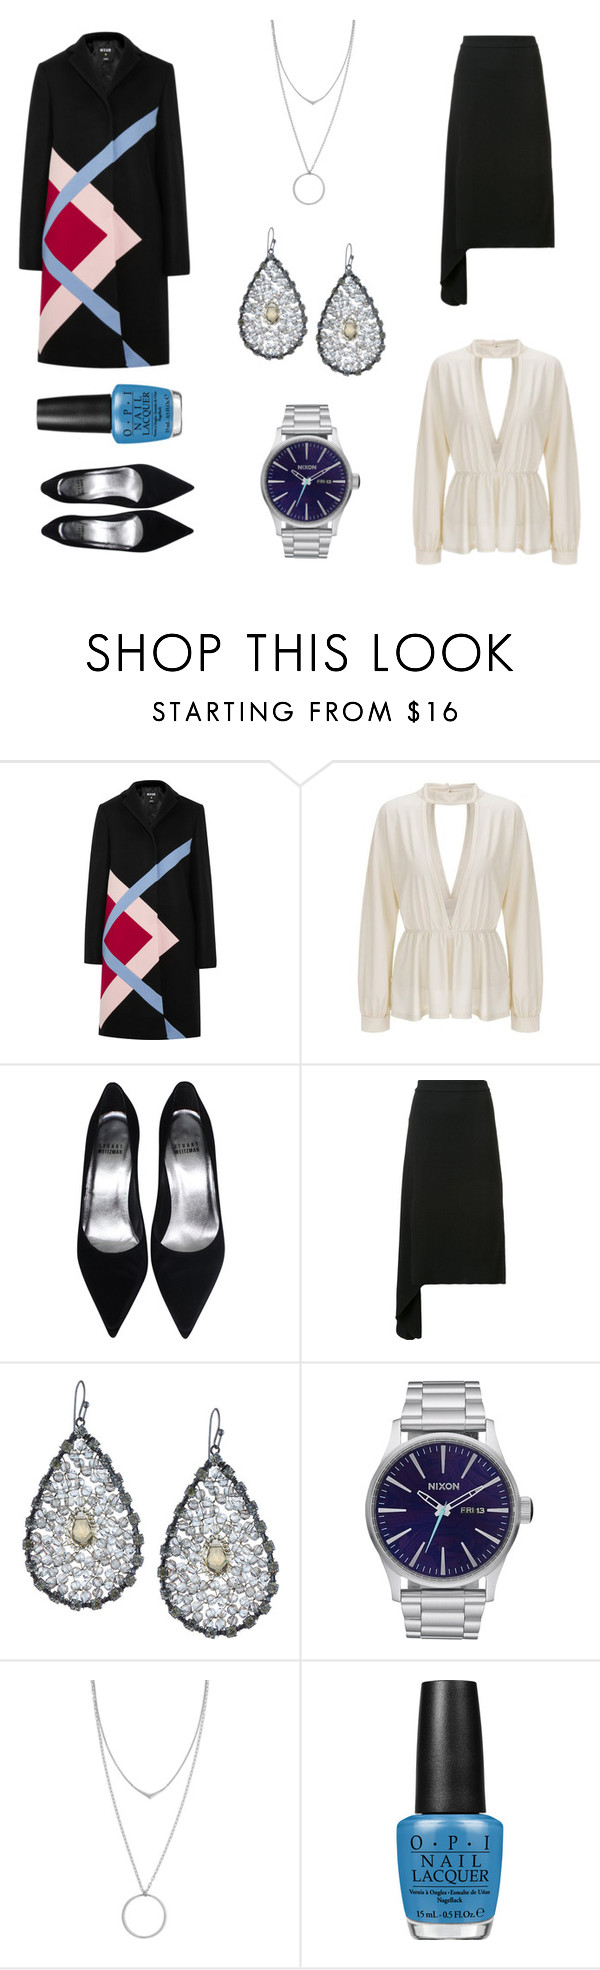 """""""Bookkeeping at the Top of the Rock"""" by tankytank ❤ liked on Polyvore featuring MSGM, Hellessy, NAKAMOL, Nixon, Botkier and OPI"""